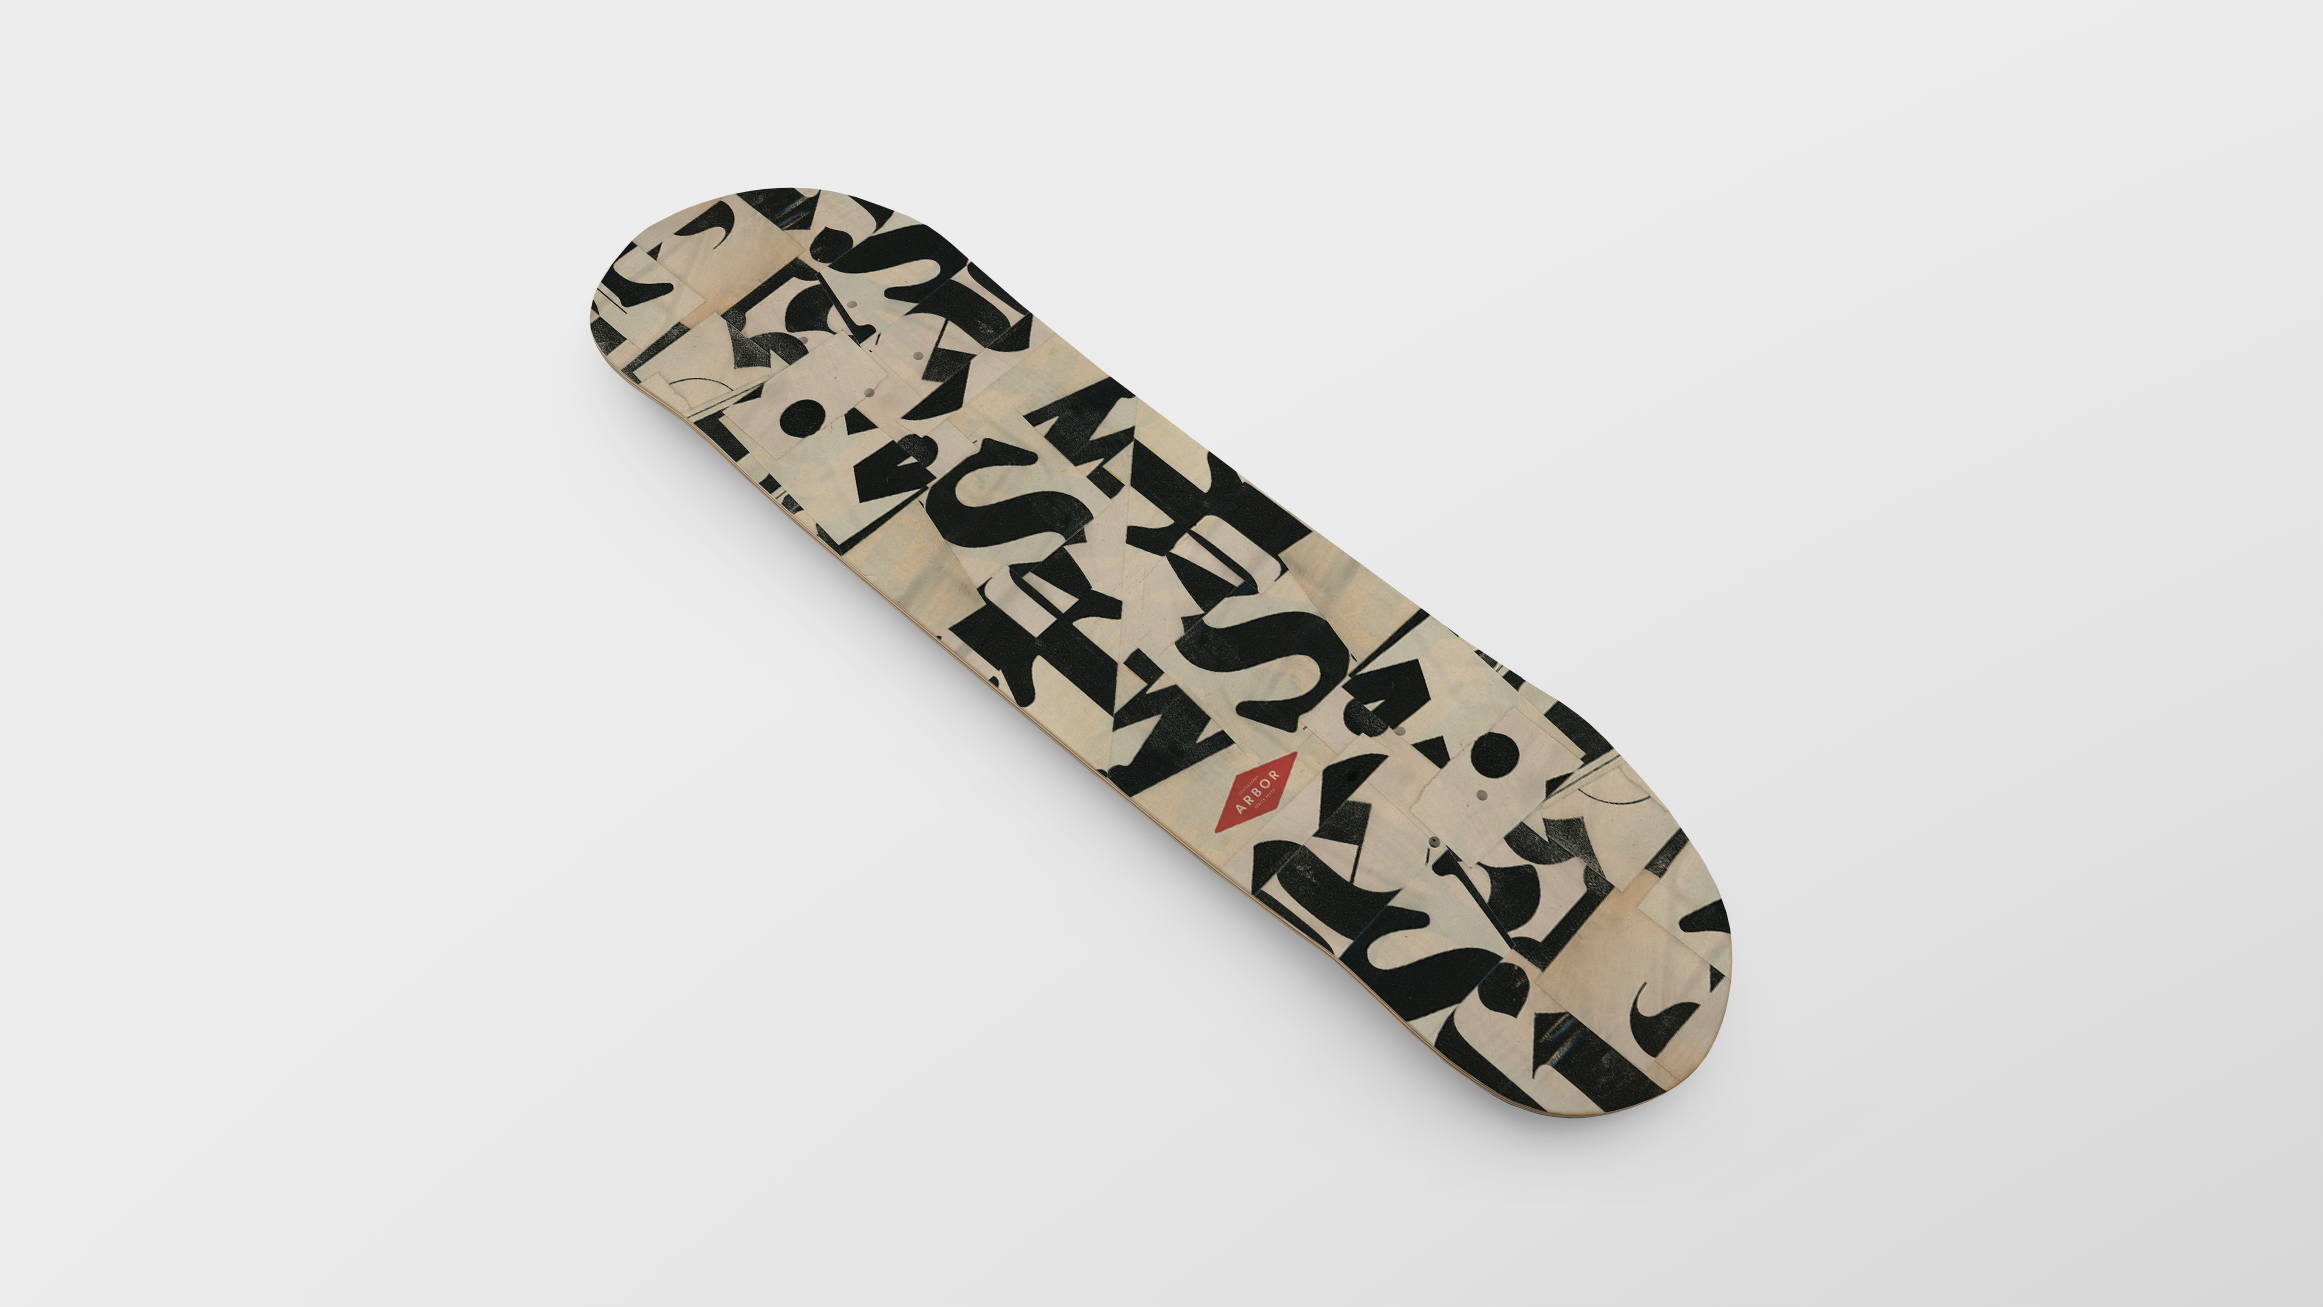 Arbor_Board_0003_Layer-Comp-4.png